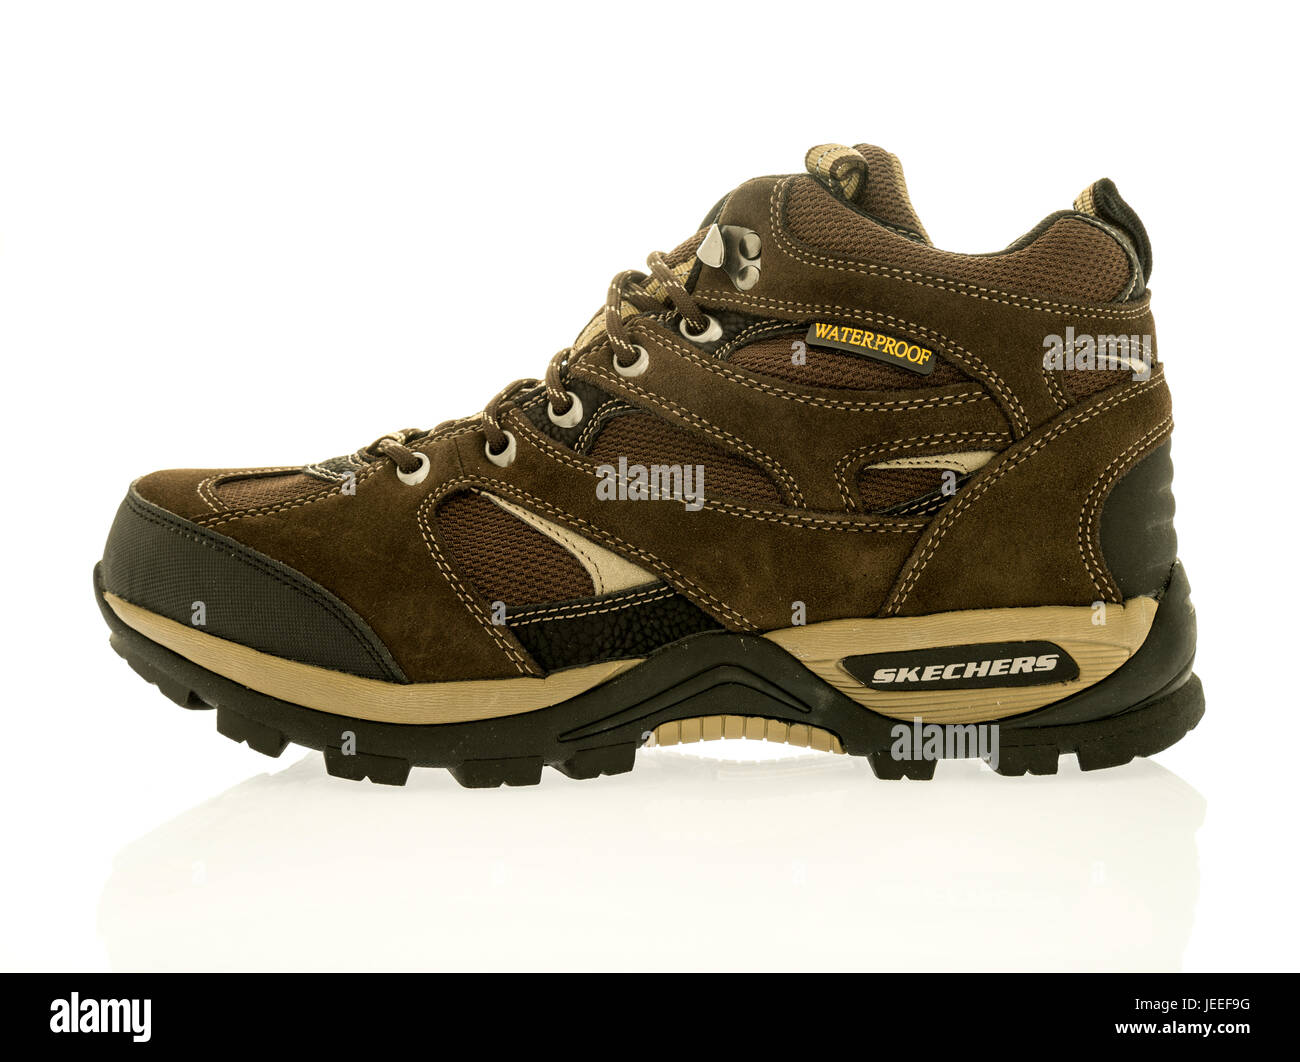 0899deb50b72 Skechers Shoes Stock Photos   Skechers Shoes Stock Images - Alamy